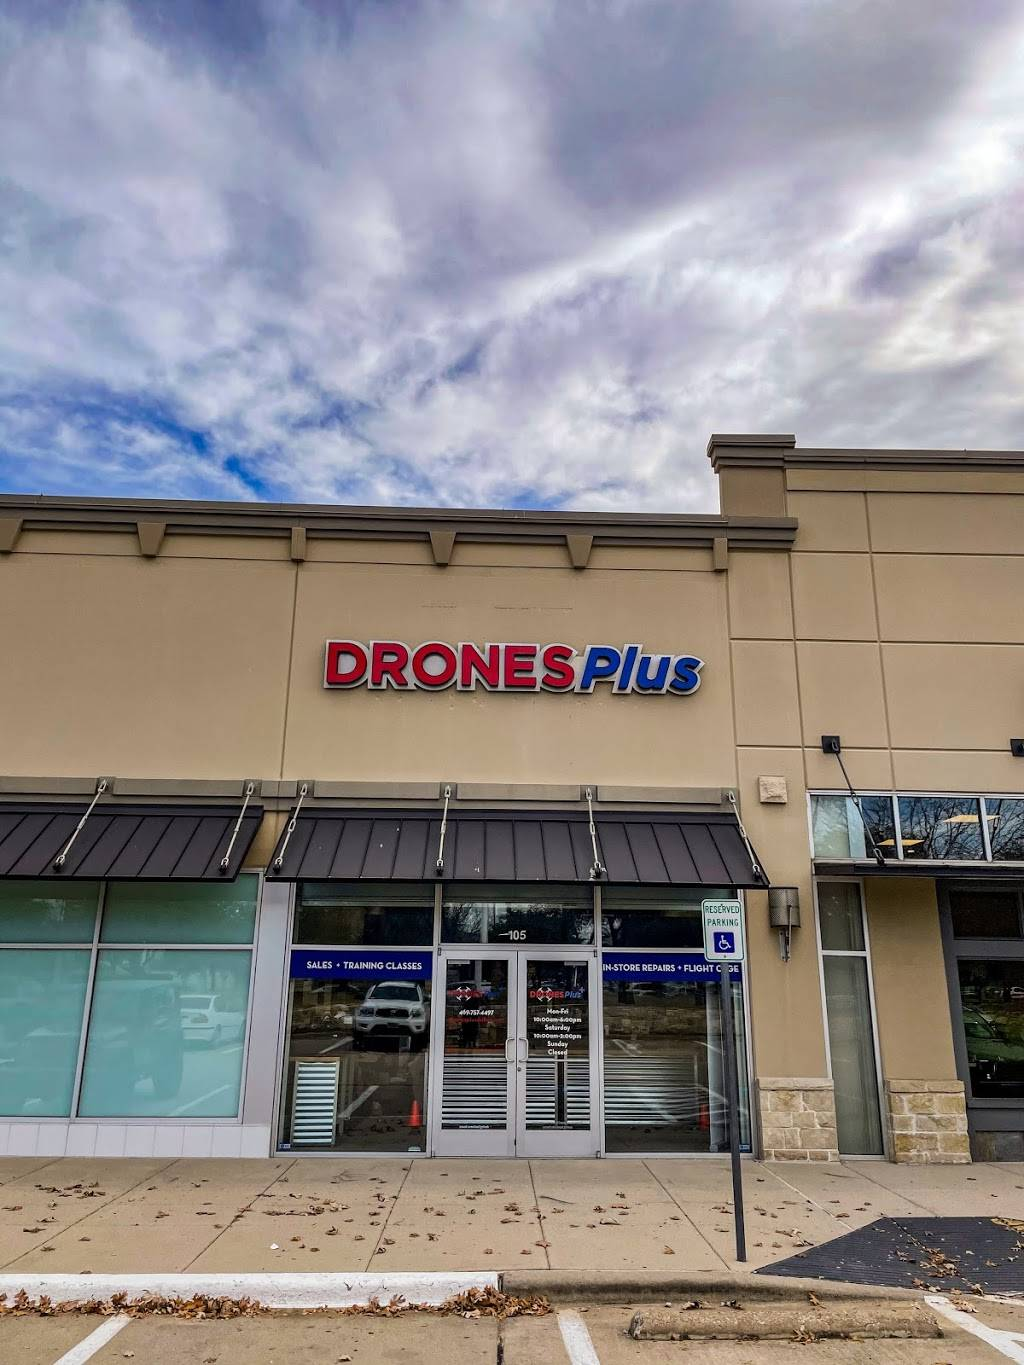 Drones Plus - electronics store  | Photo 1 of 6 | Address: 8549 Gaylord Pkwy #105, Frisco, TX 75034, USA | Phone: (469) 757-4497